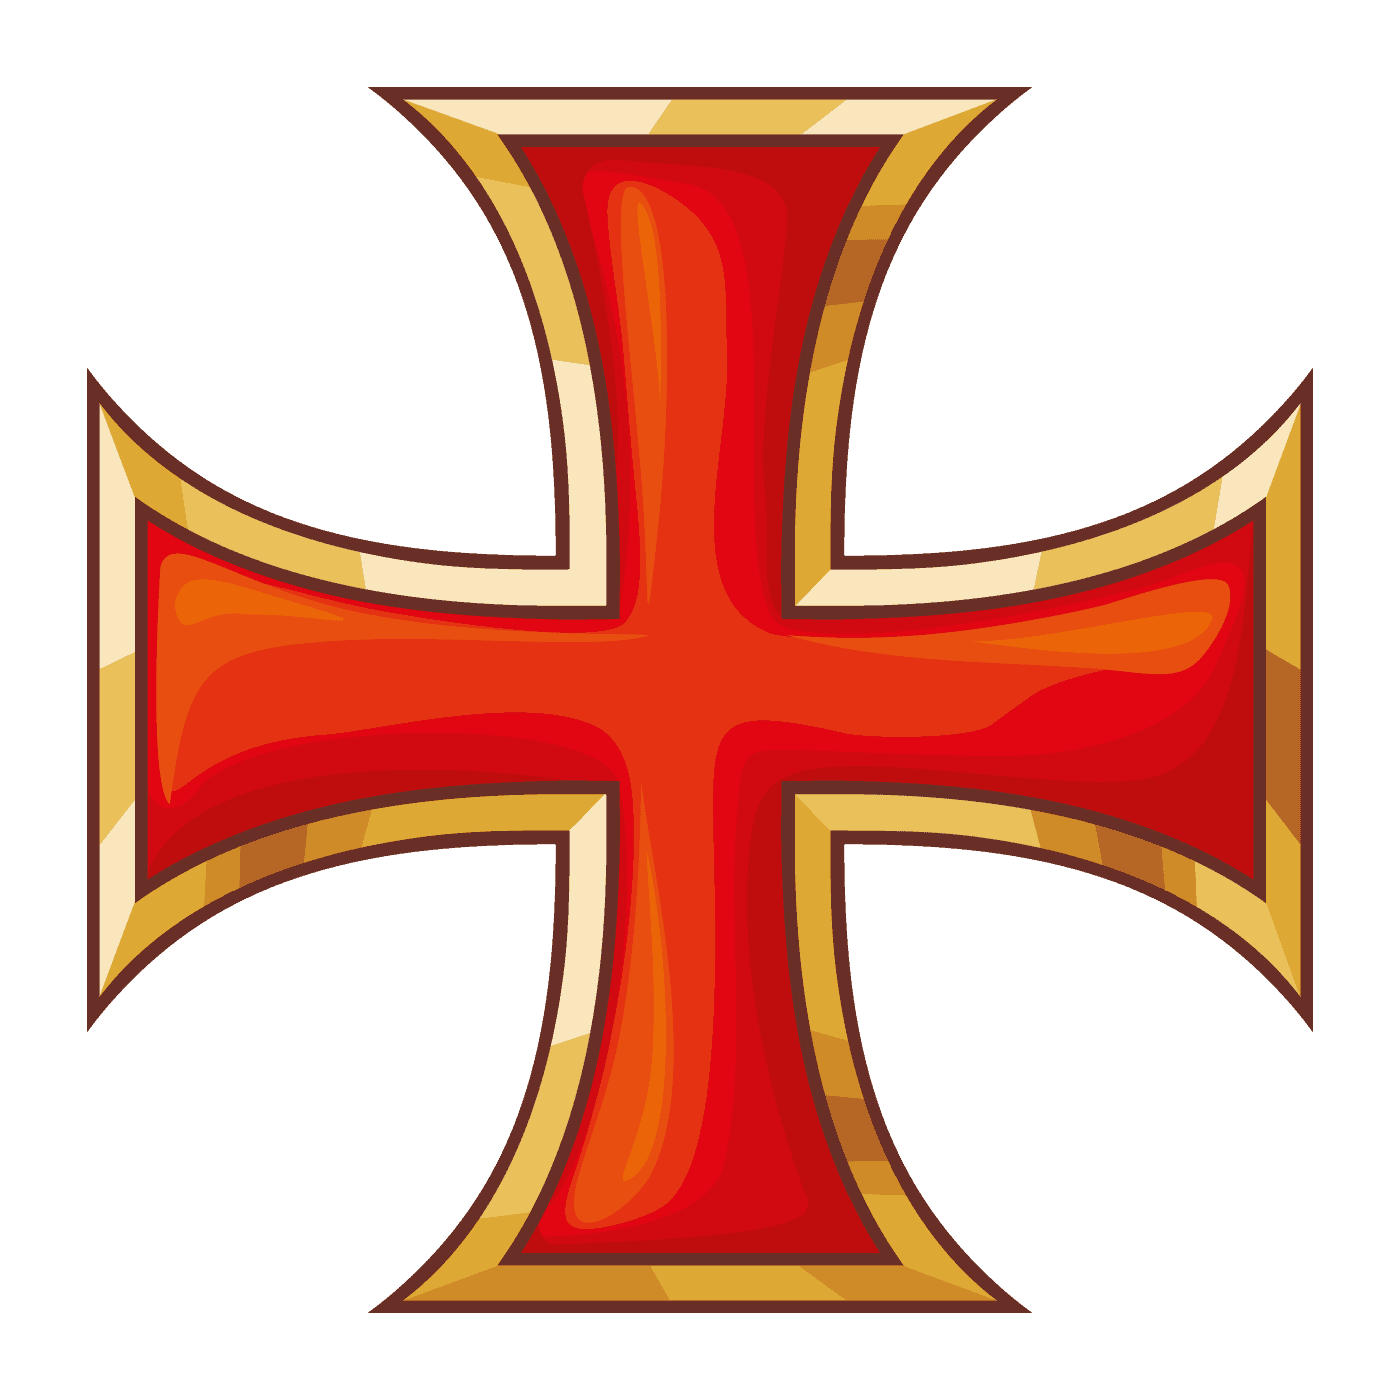 A Maltese Cross in Red And Yellow Colors, Fire Department Symbol's Inspiration